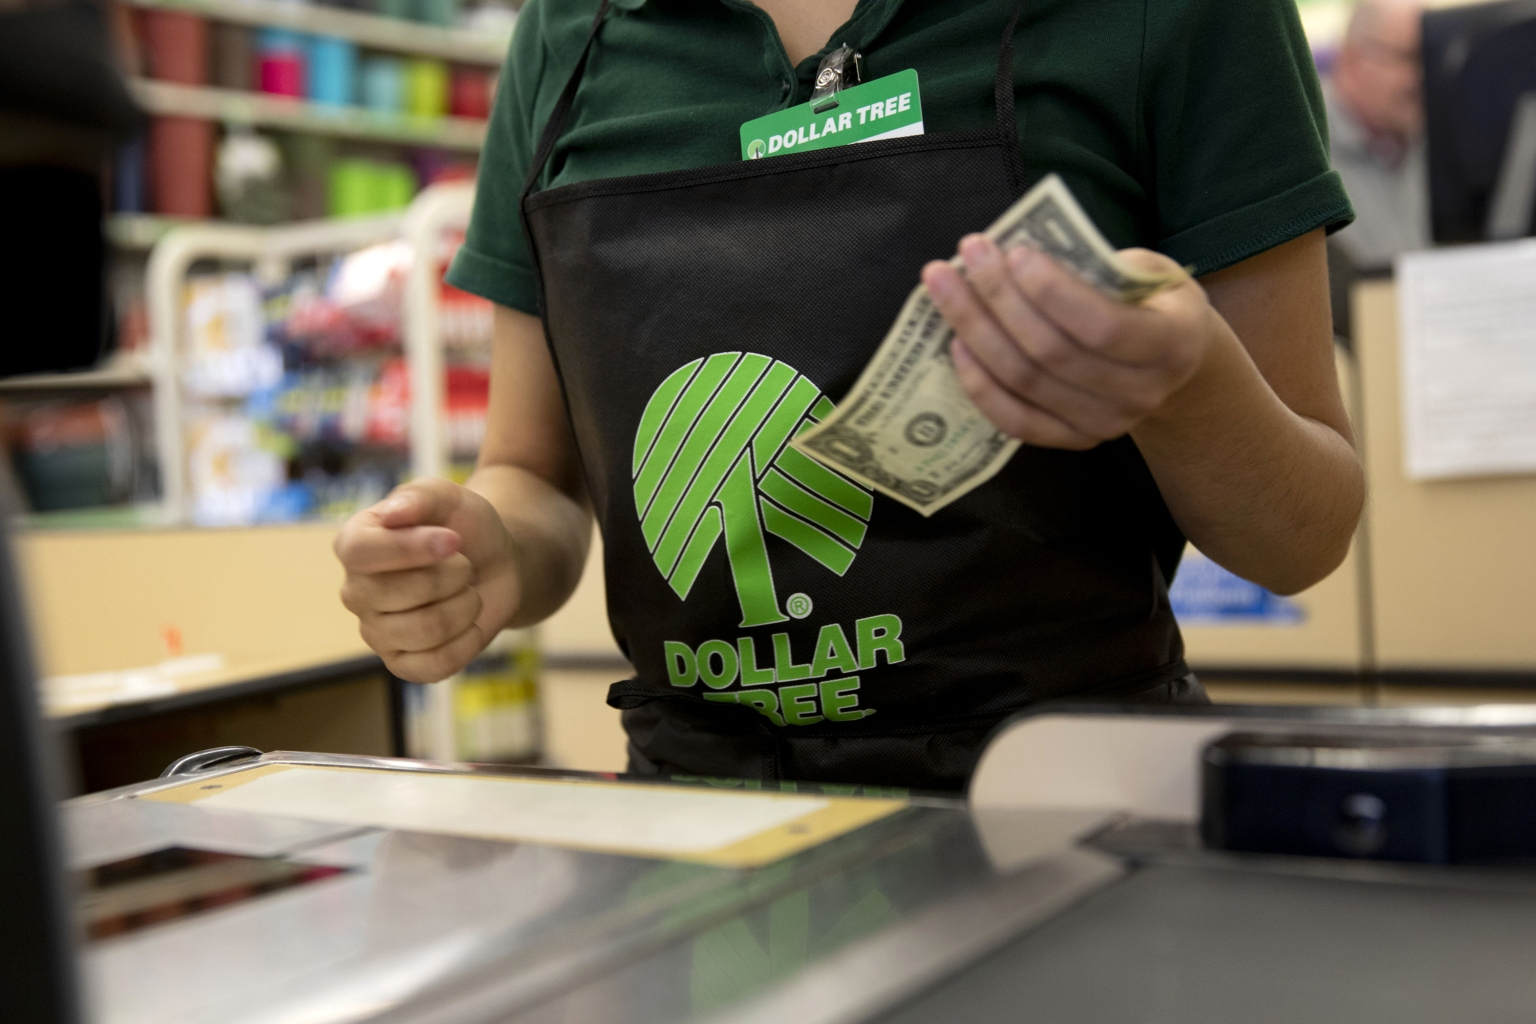 Dollar Tree will sell more stuff for above $1